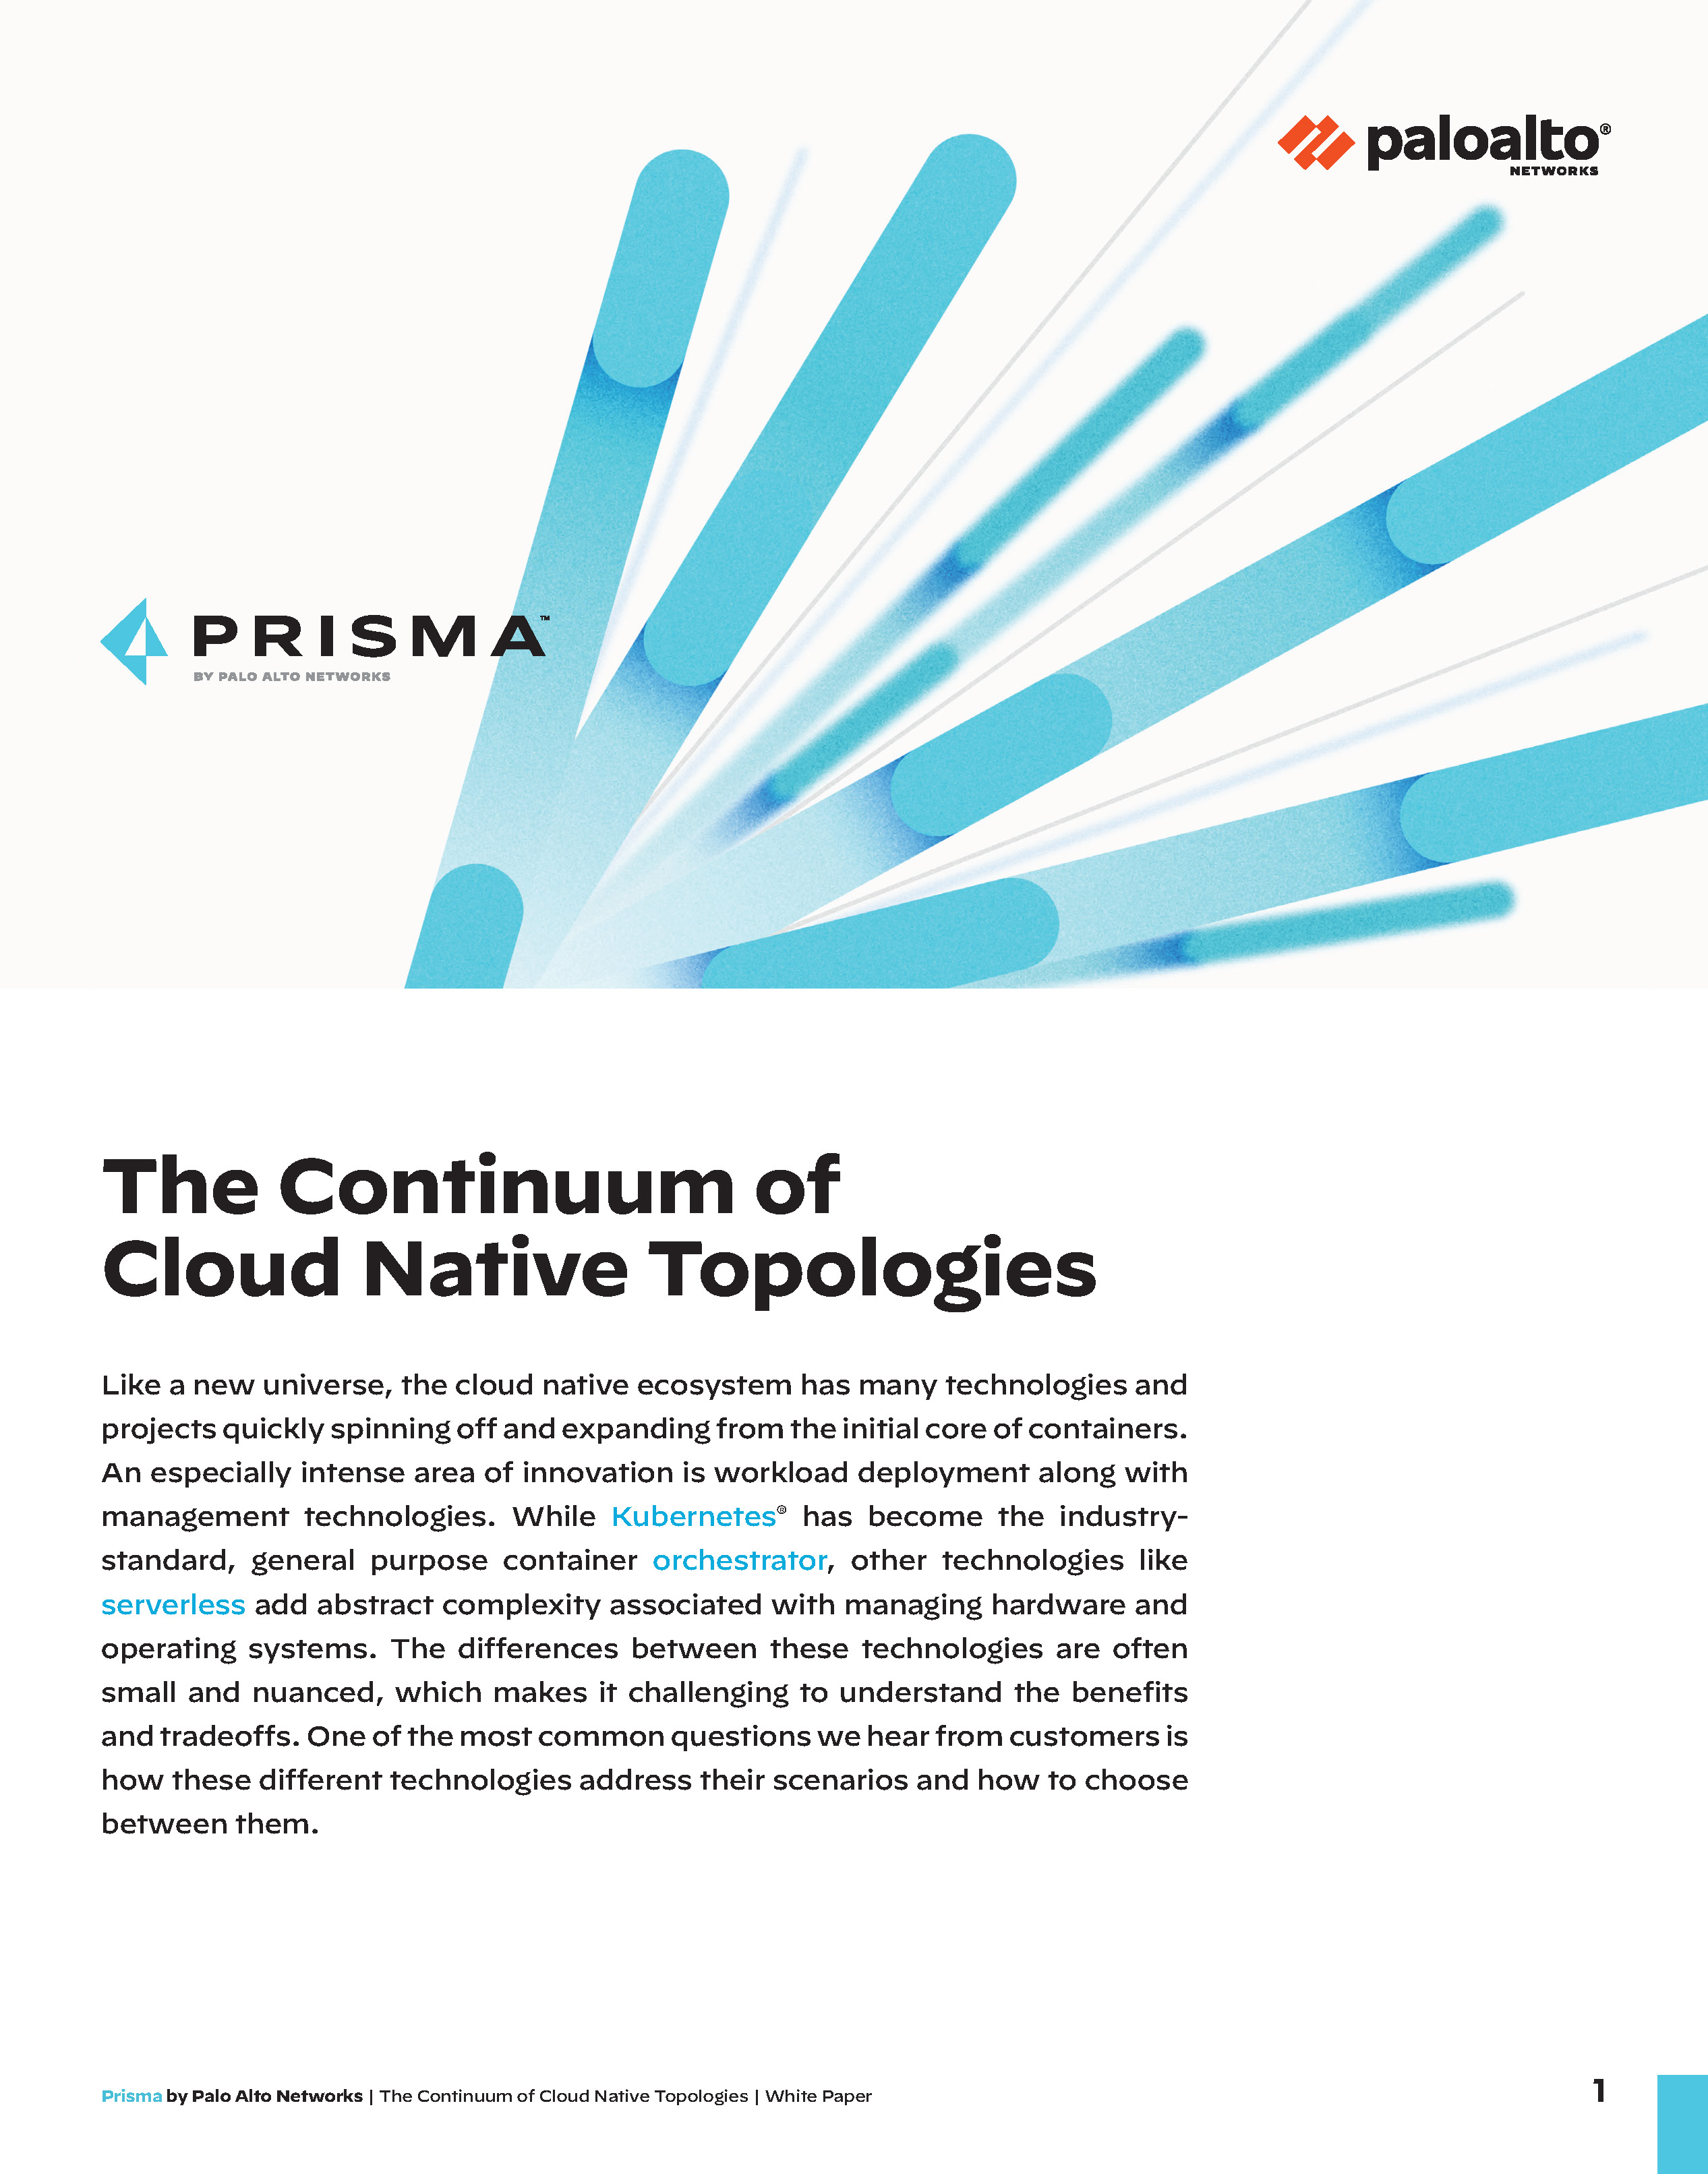 continuum-cloud-native-topologies_Page_1